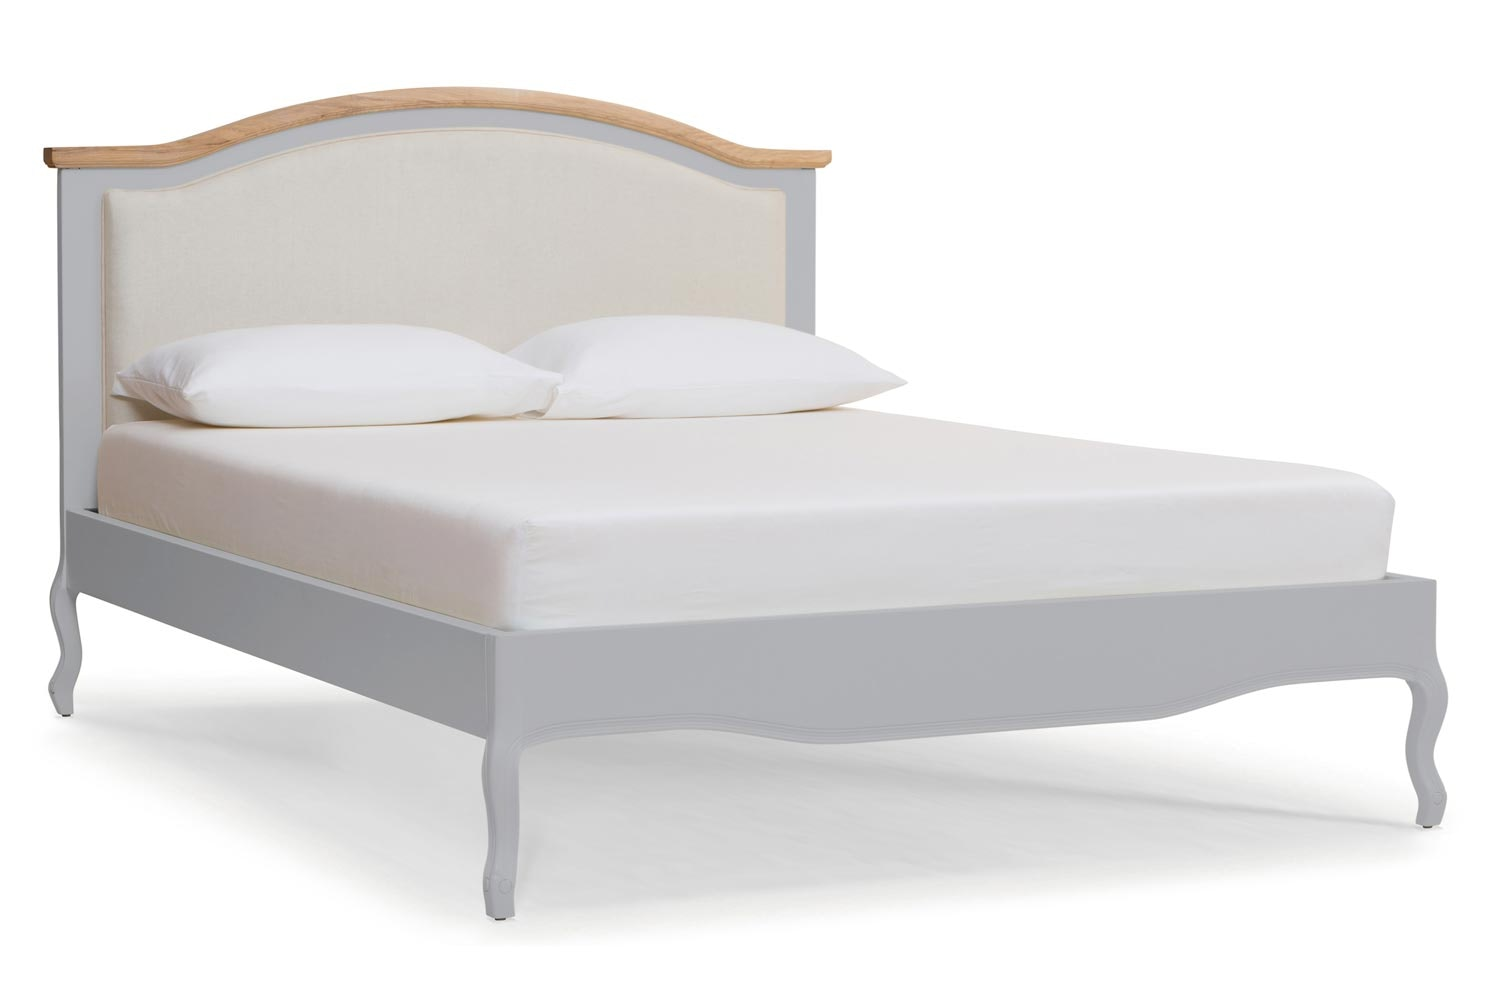 Bouvard Bed Frame 4ft6 | Colourtrend